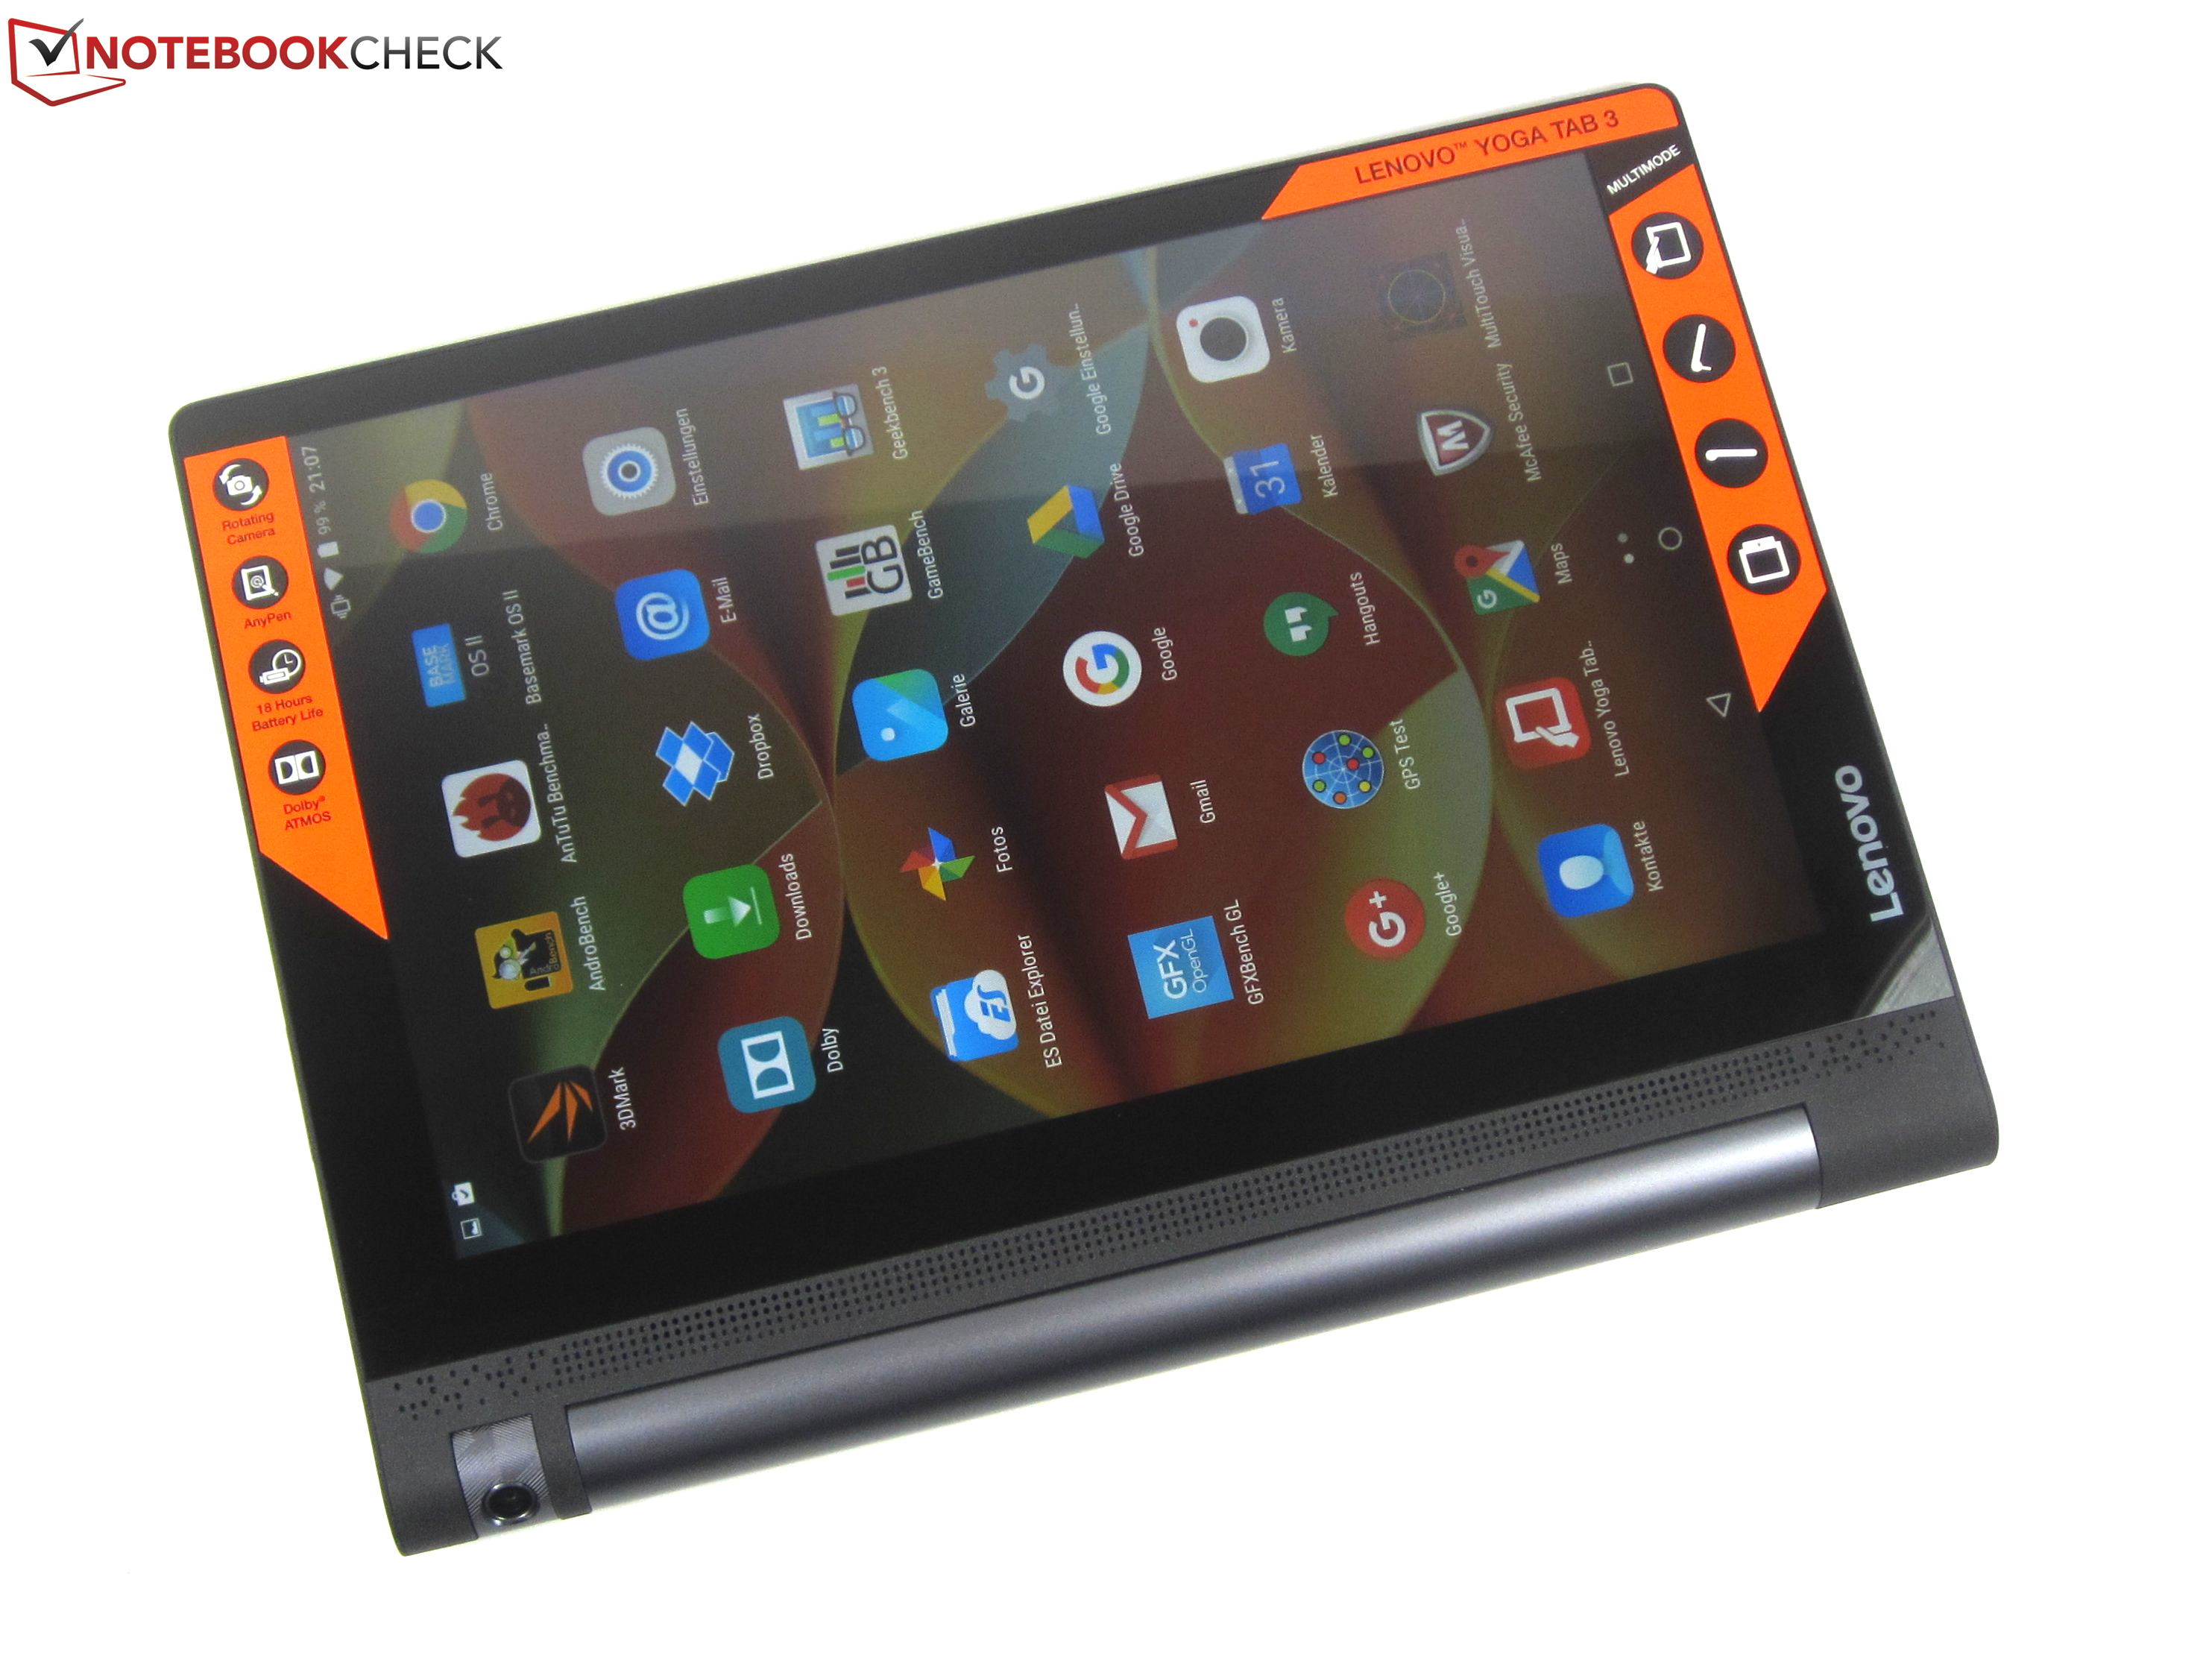 Tablet Lenovo Yoga 3 Pro: review, reviews 17